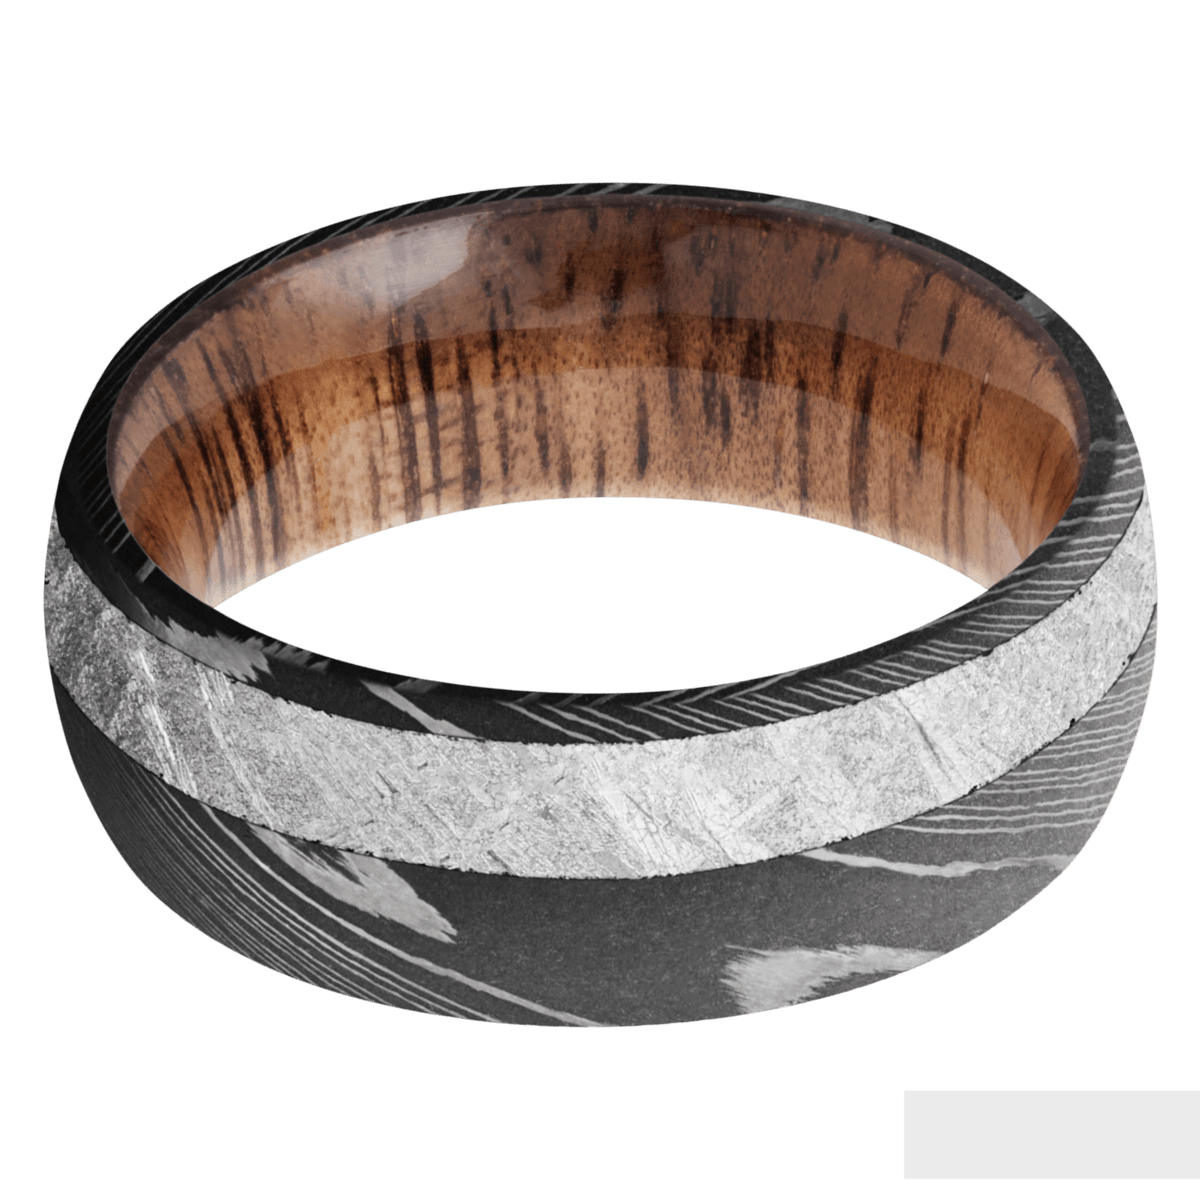 Men's Acid Finished Damascus Steel Ring with Meteorite and Wood Sleeve